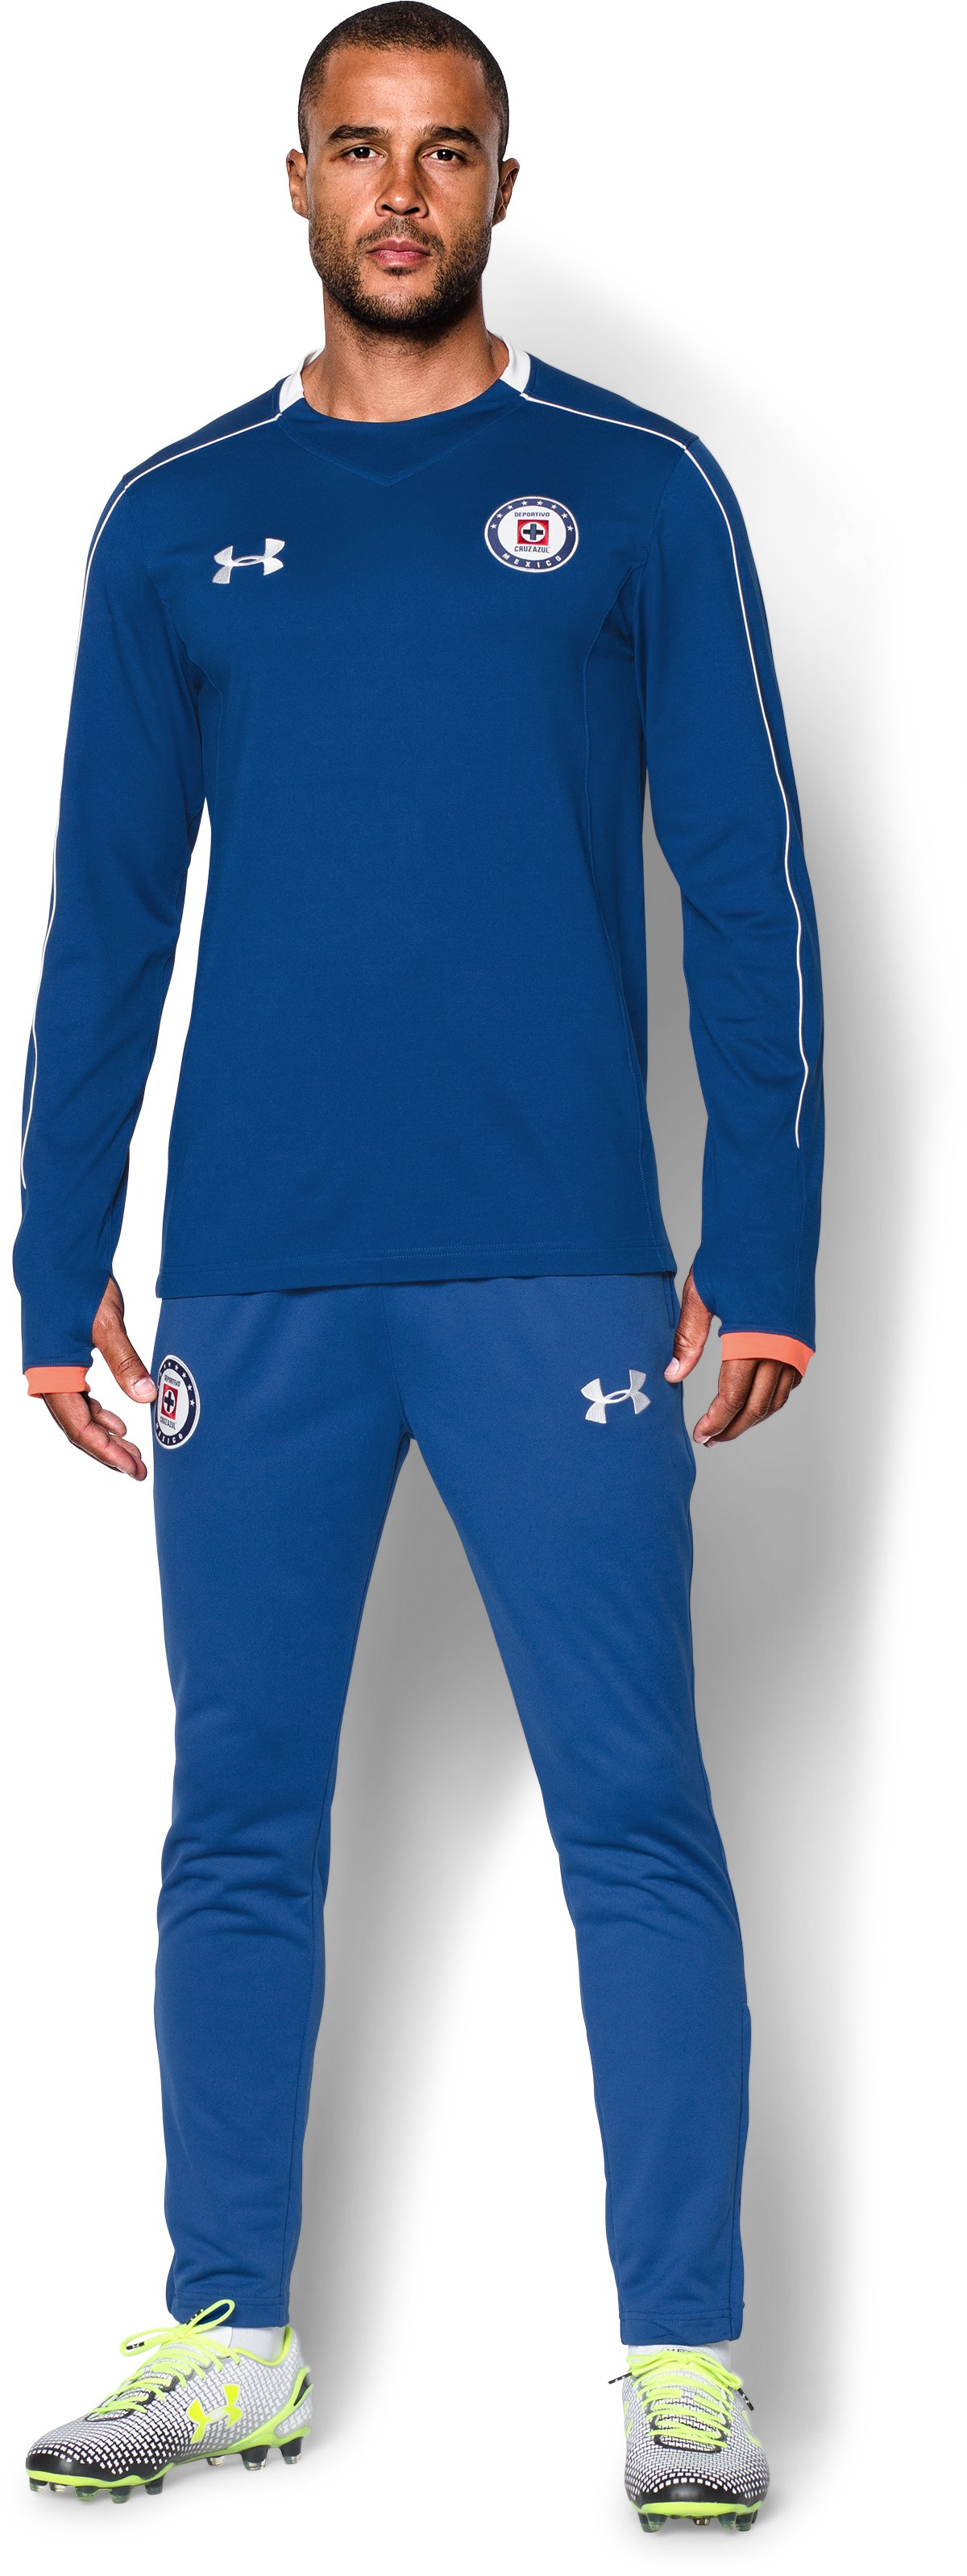 Men's Cruz Azul 15/16 Midlayer Crew, Royal, Front